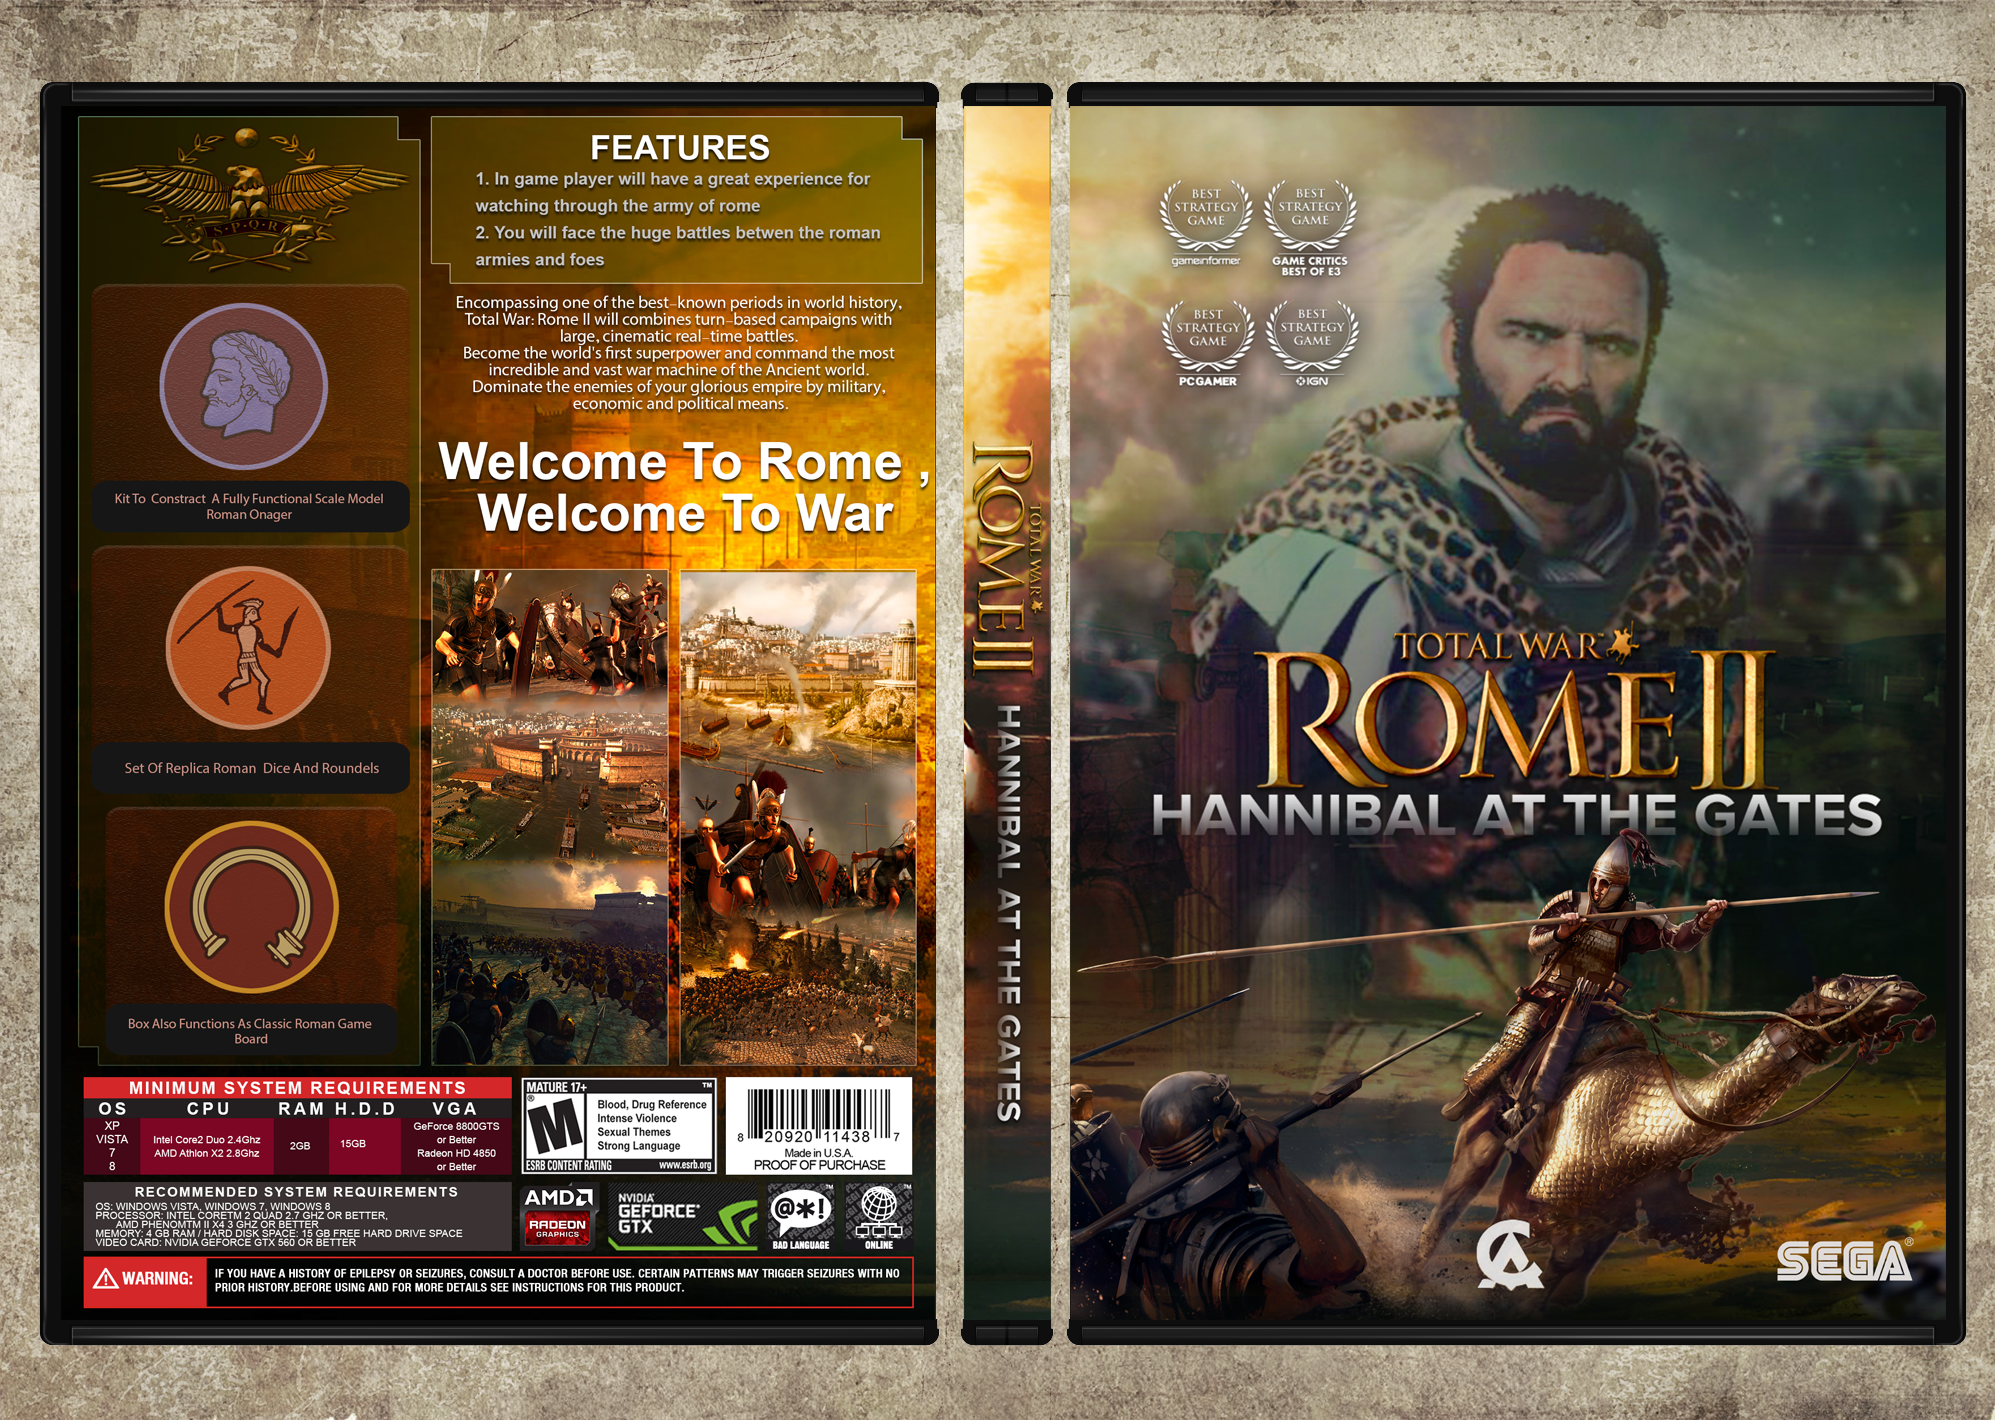 Total War Rome II Hannibal at the Gates box cover